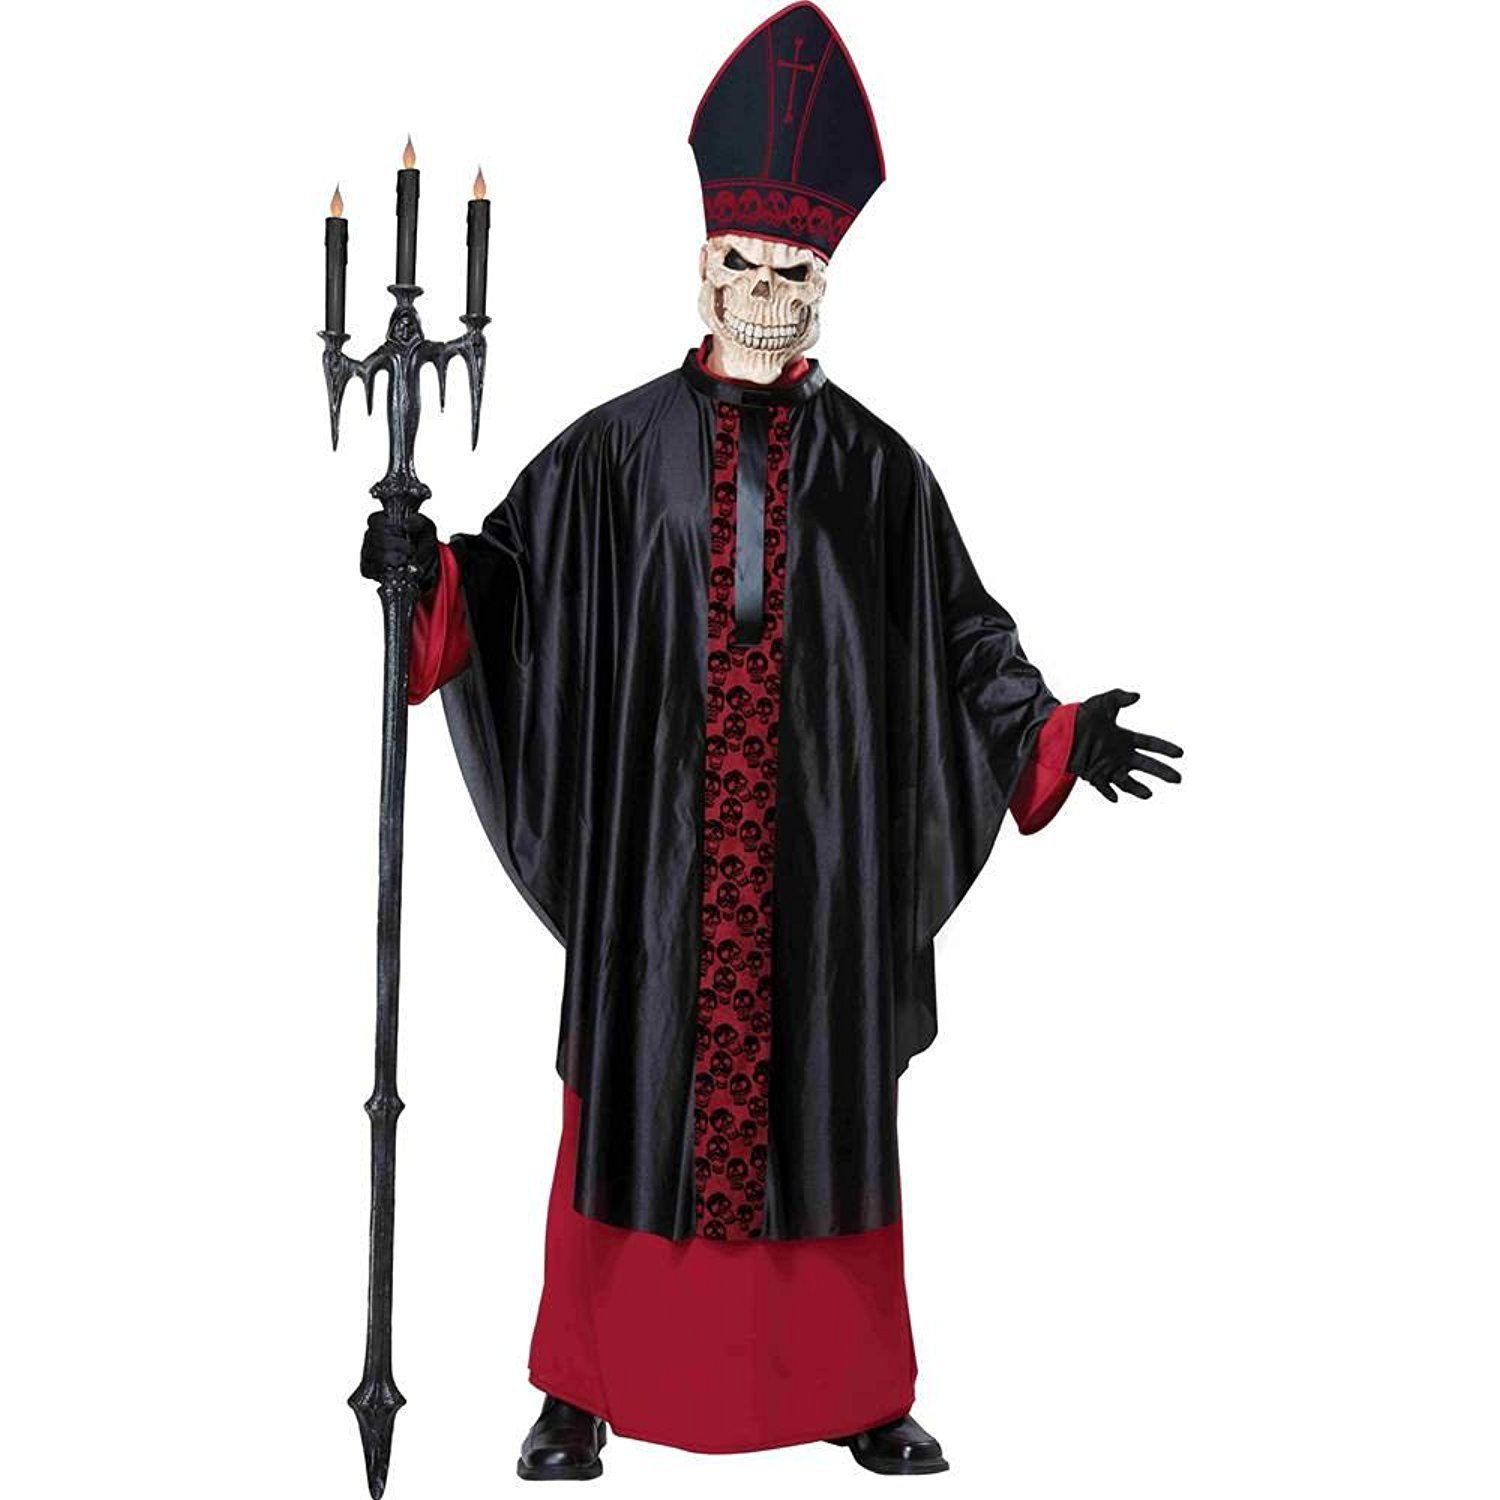 Mens Red Cardinal Heavy Fabric Costume Outfit for Priest Bishop Pope Fancy Dress